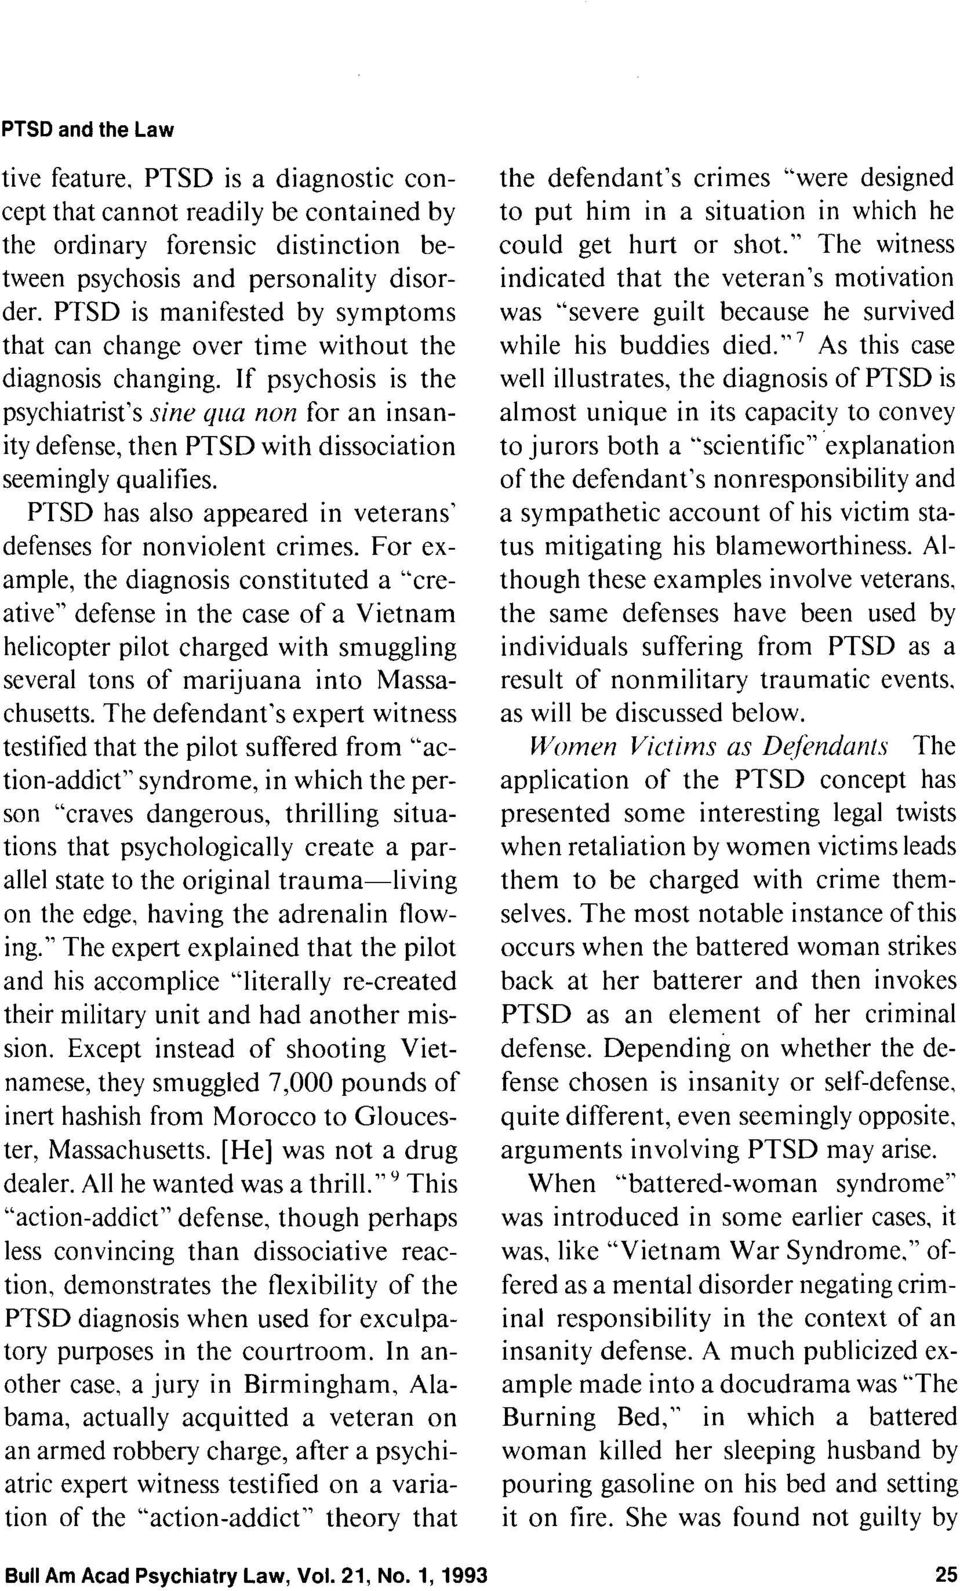 If psychosis is the psychiatrist's sine yzia non for an insanity defense, then PTSD with dissociation seemingly qualifies. PTSD has also appeared in veterans' defenses for nonviolent crimes.